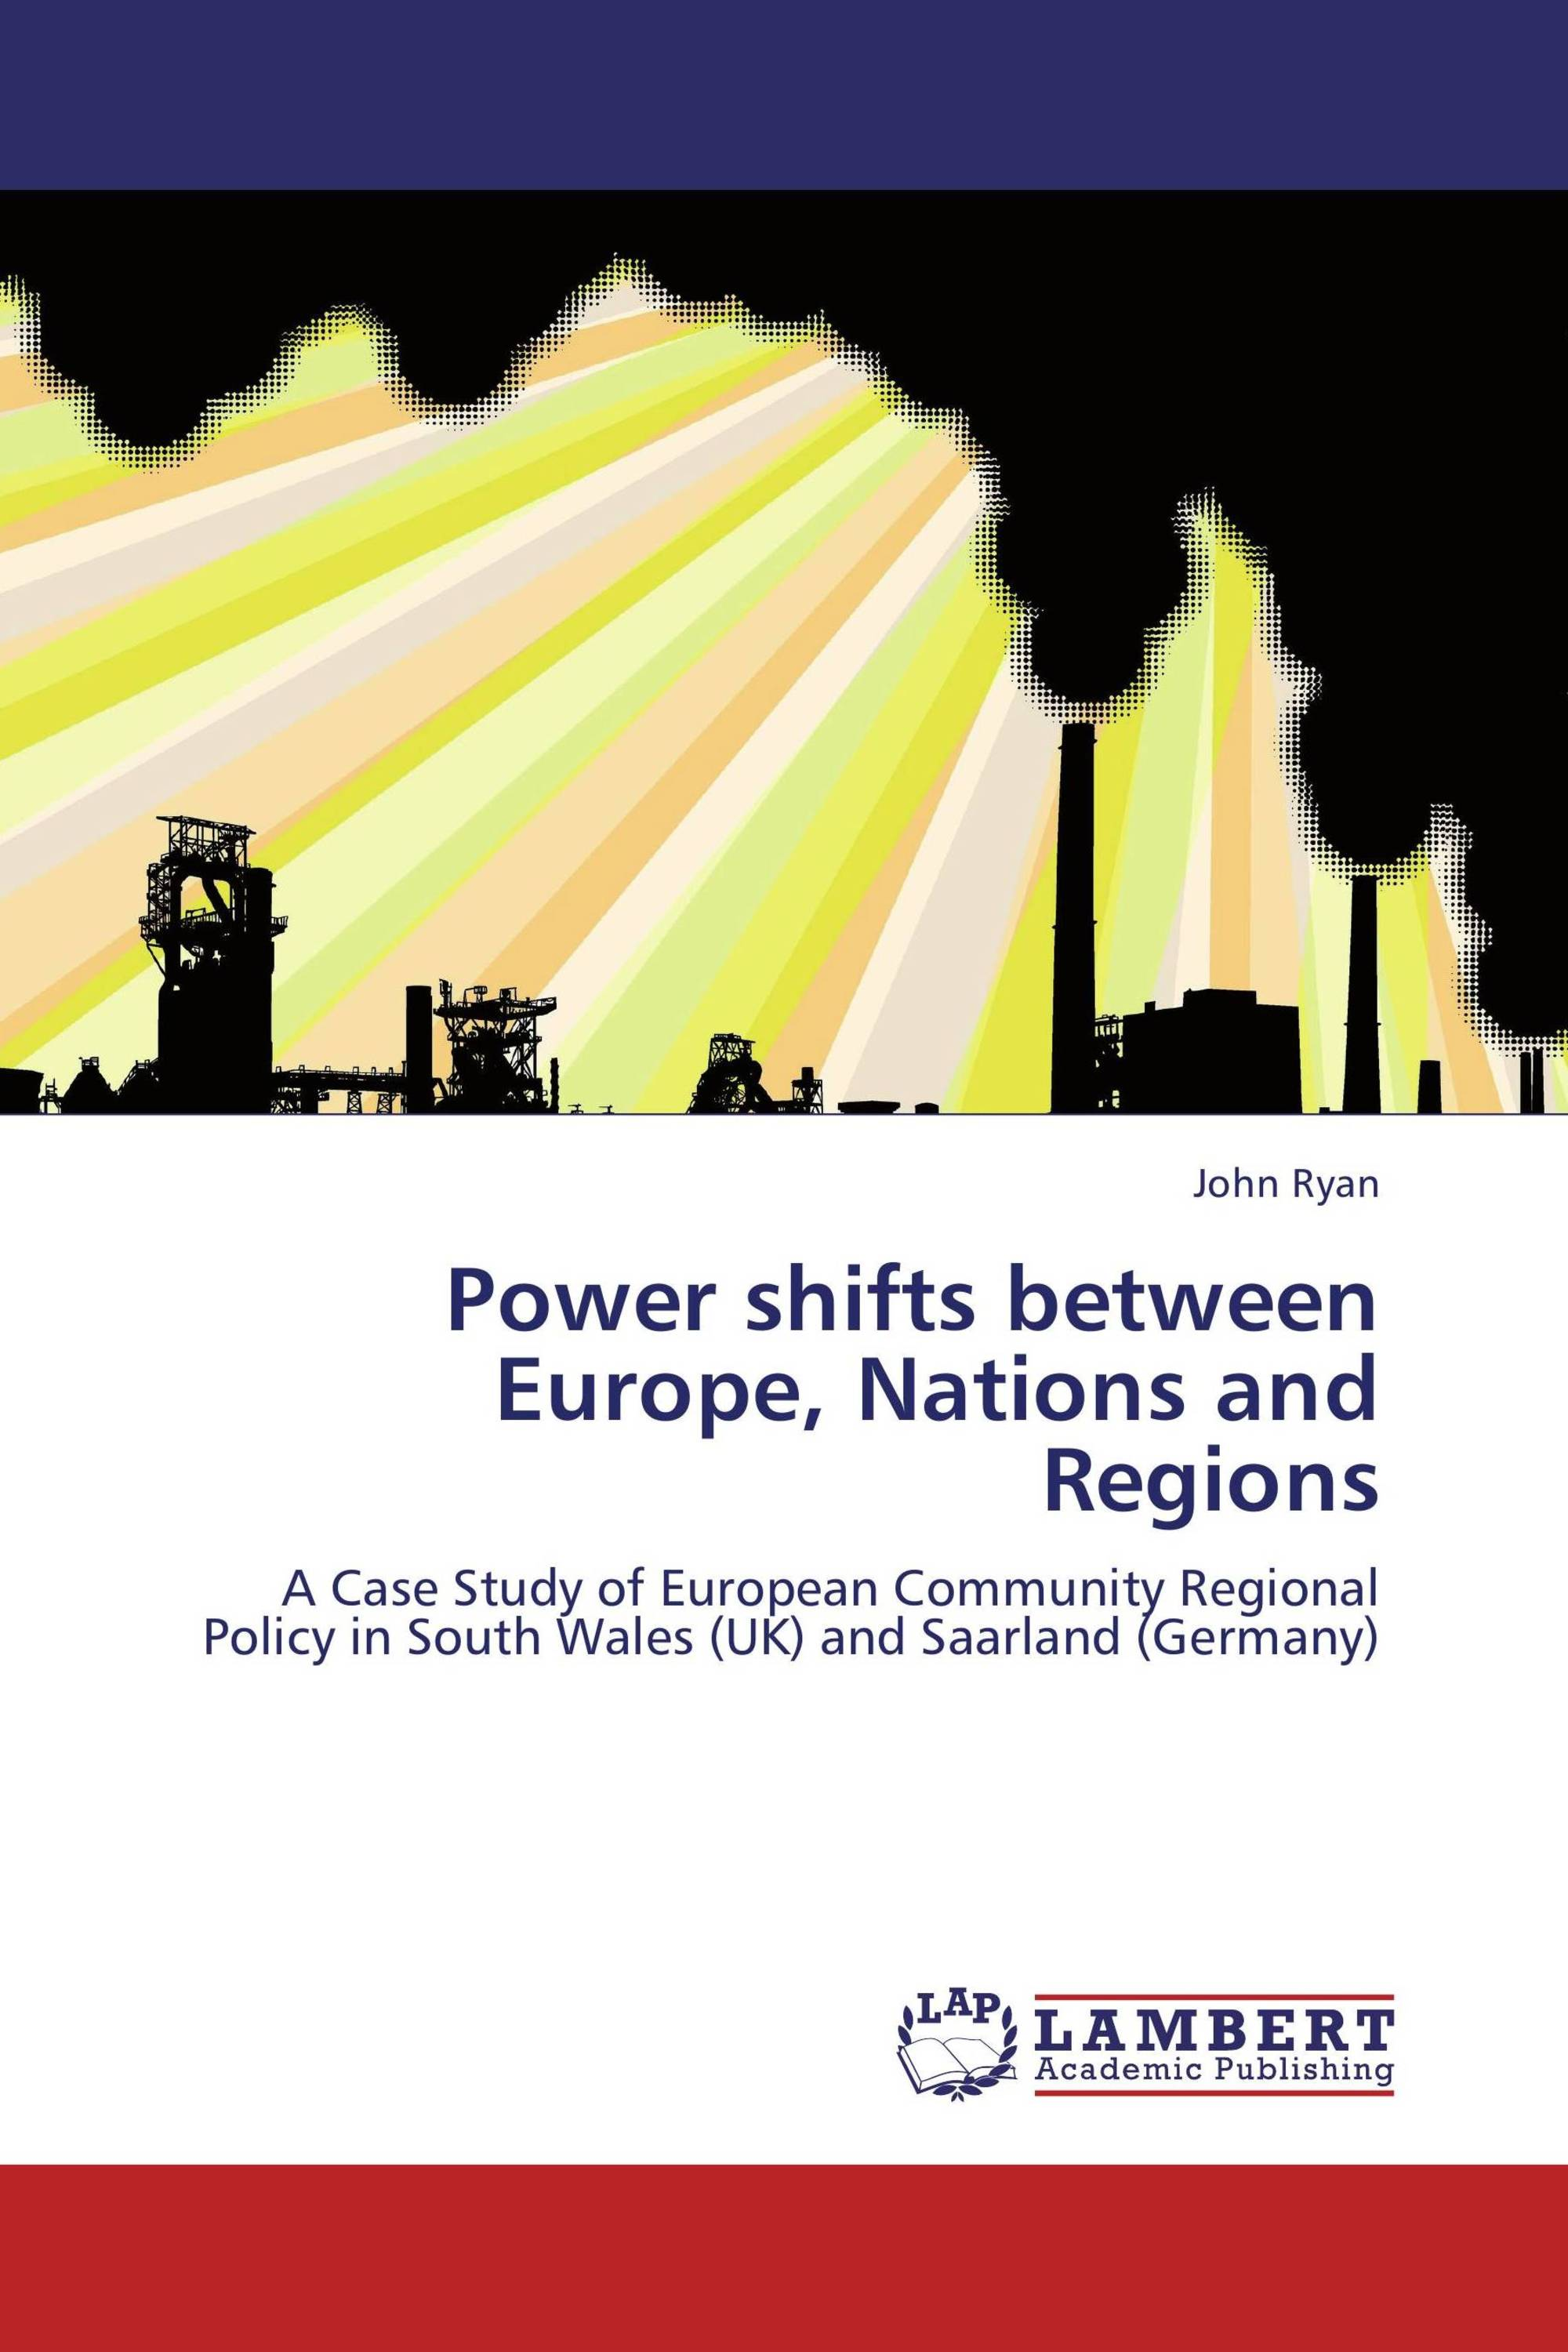 Power shifts between Europe, Nations and Regions